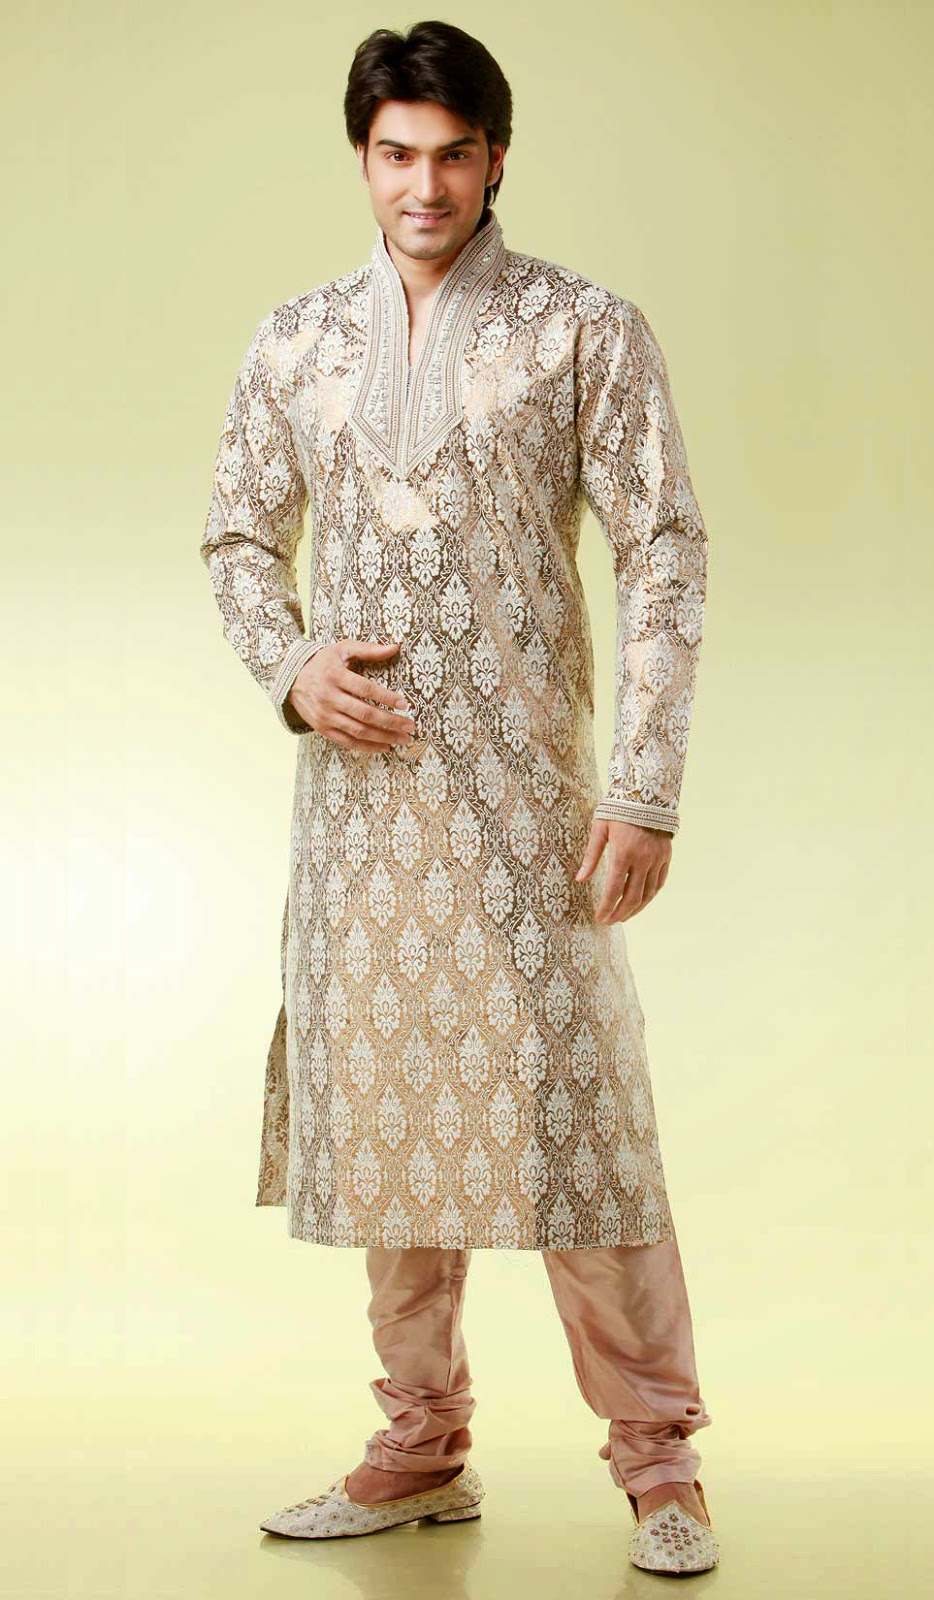 b95d804423 Imported kurtas were fashionable in the United States in the 1960s and  1970s, as an element of hippie fashion, fell from favor briefly, and are  now again ...